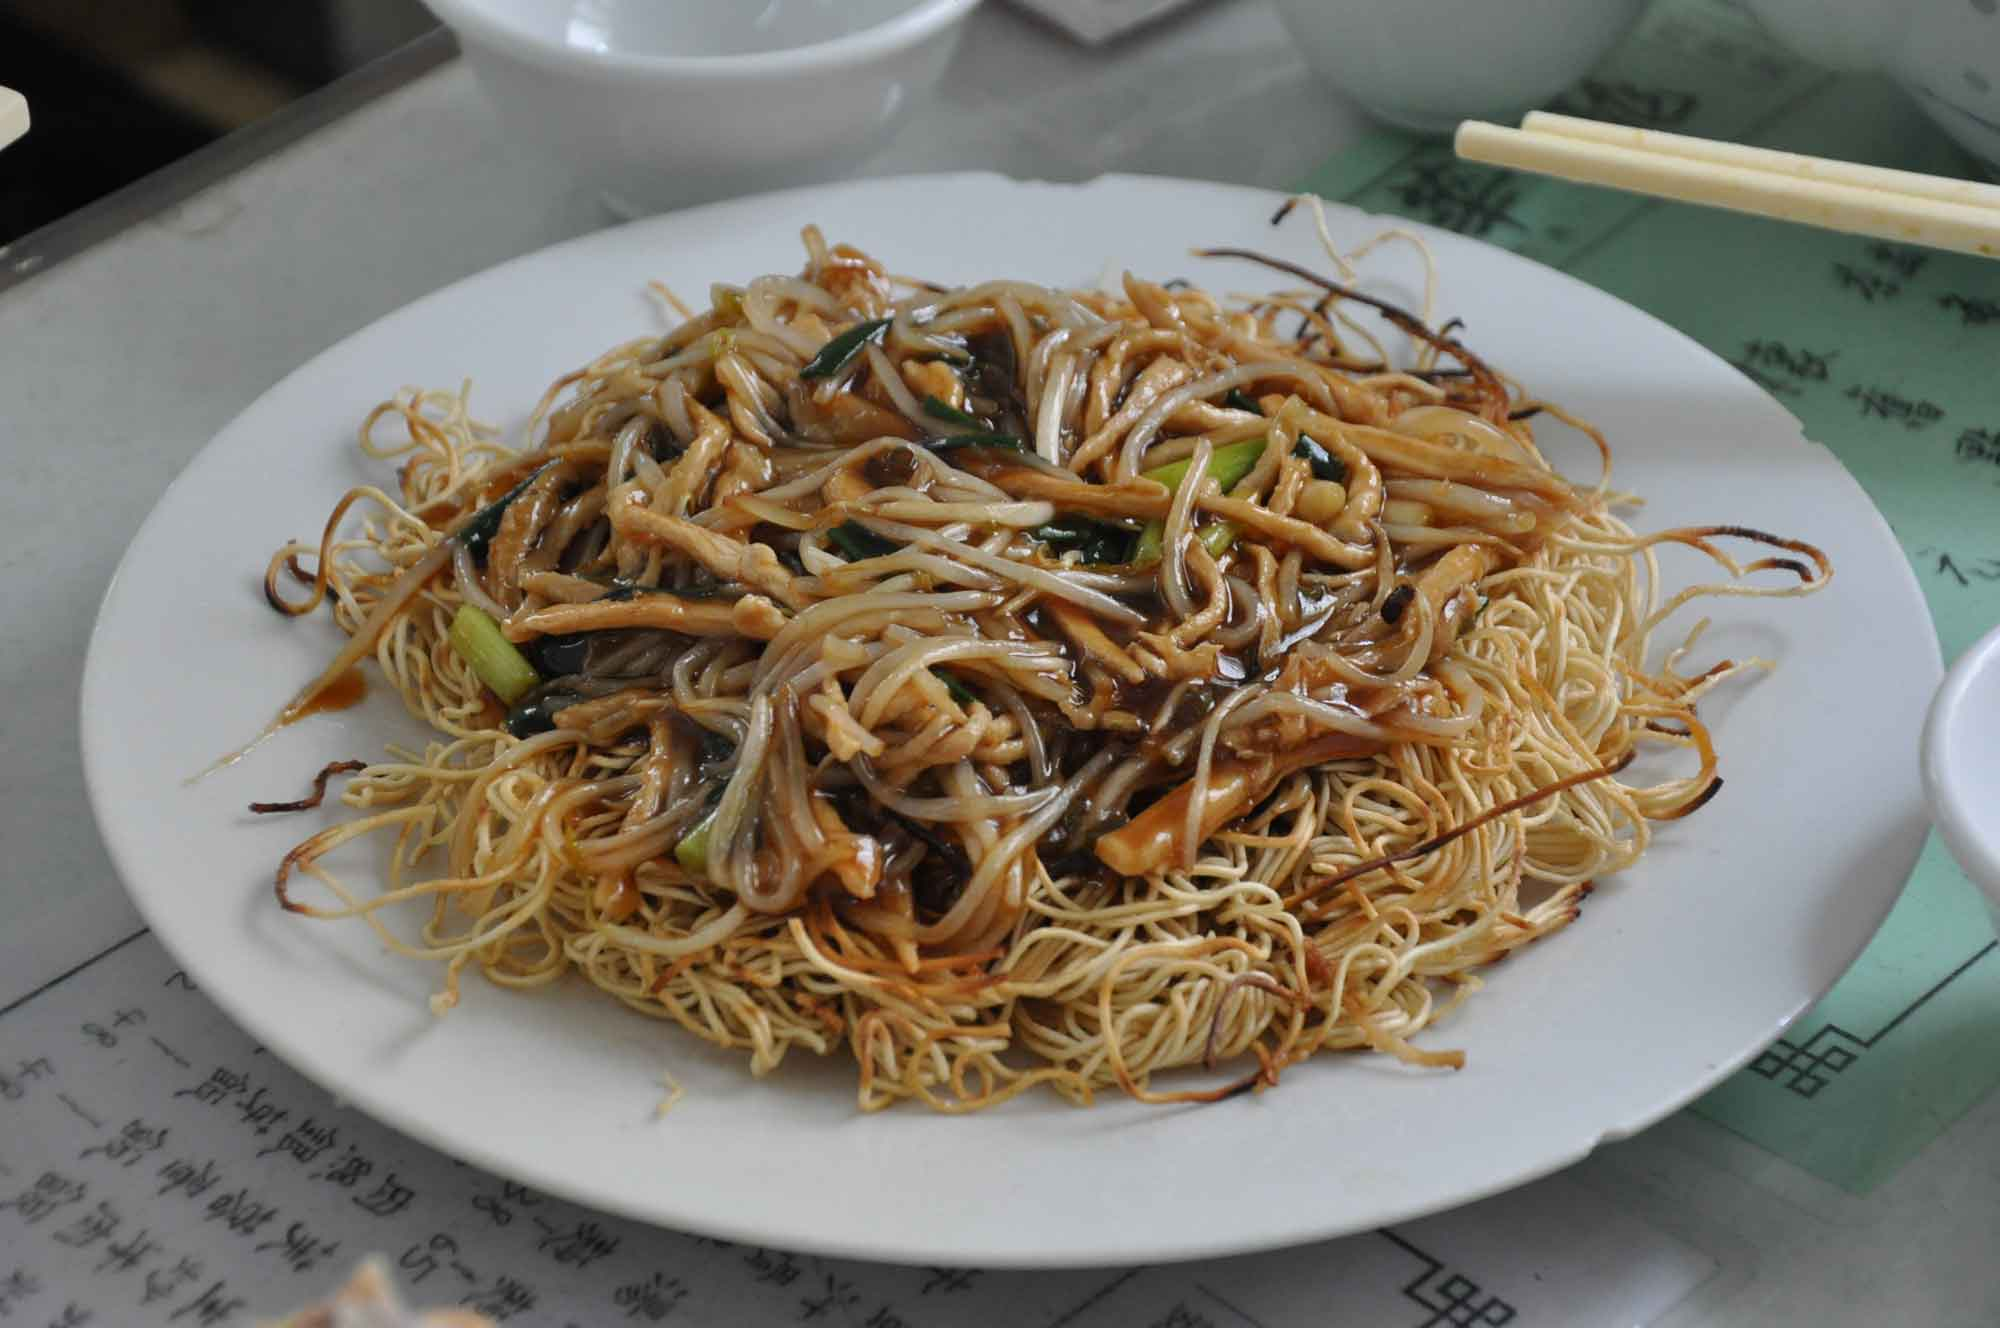 Best Macau Dishes: Stir Fried Noodles with Vegetables at Long Wa